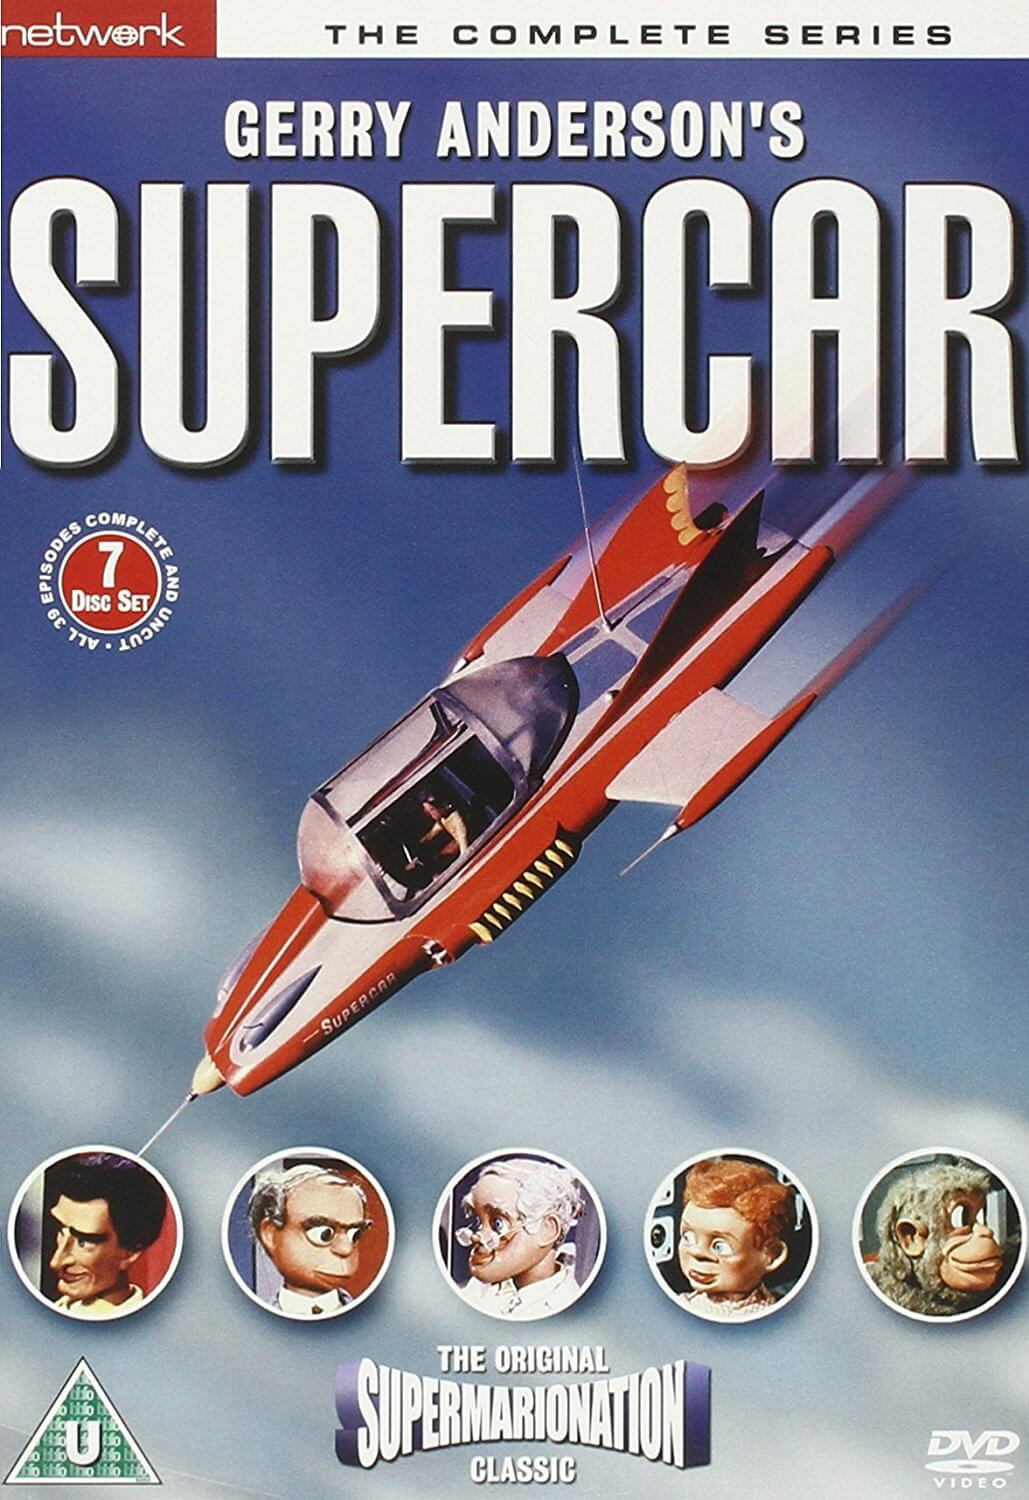 Supercar - The Entire Series